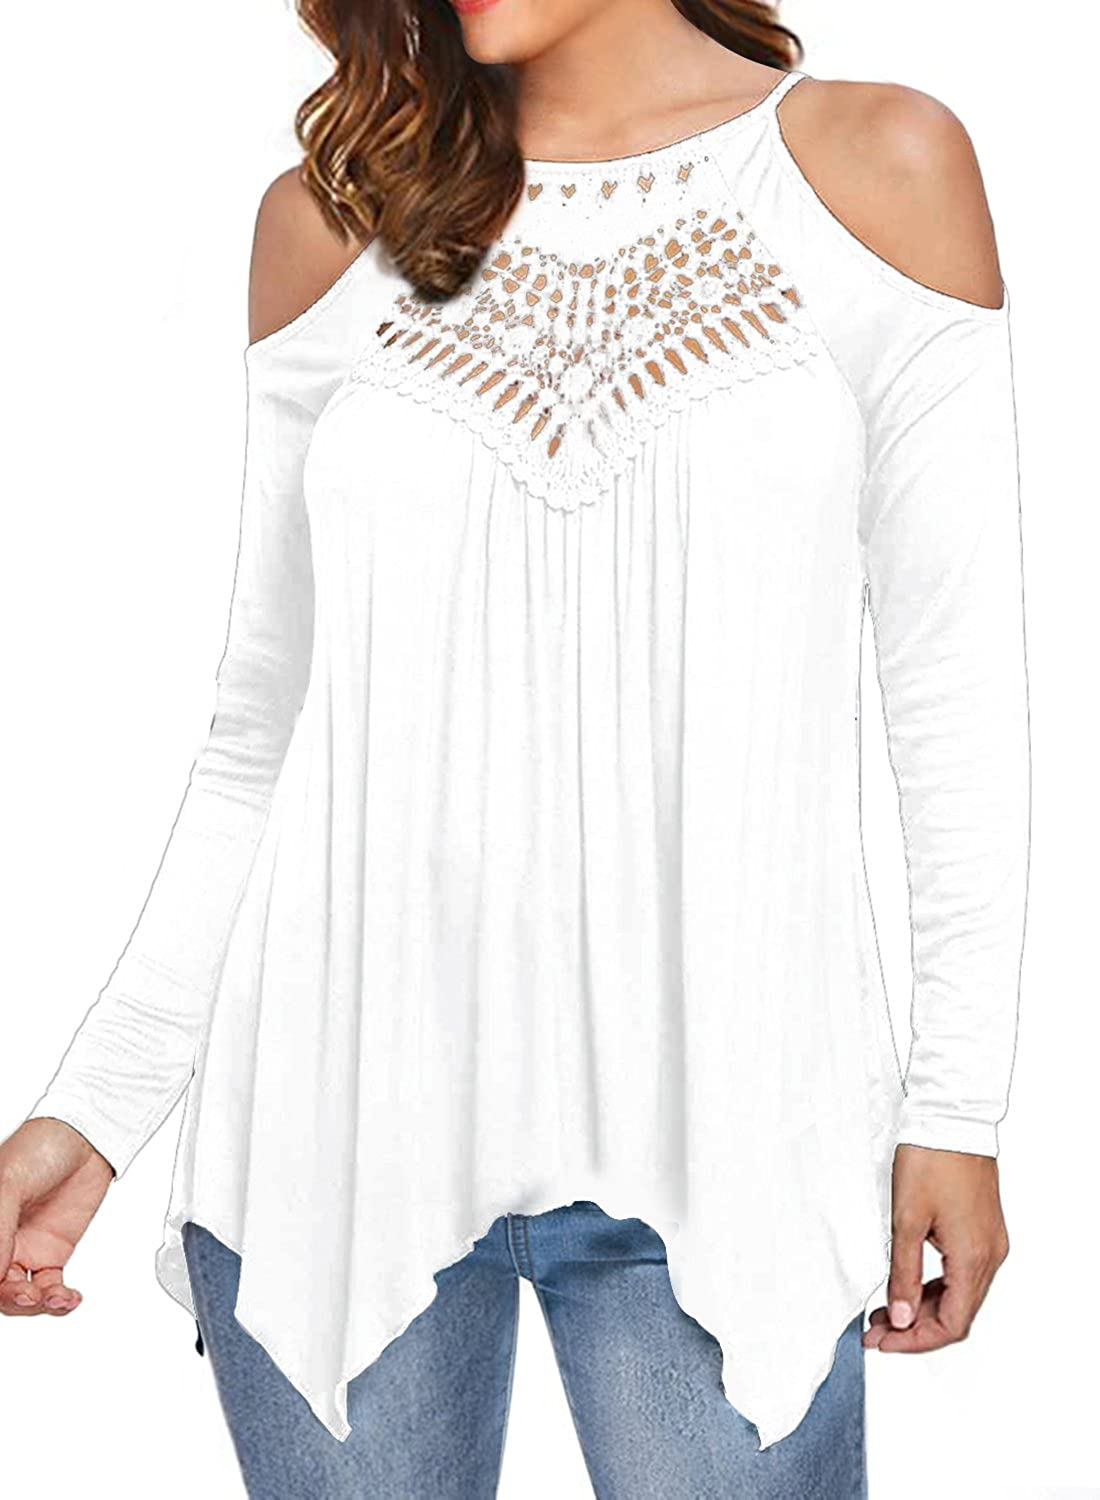 MIHOLL Women's Casual Tops Lace Off Shoulder Long Sleeve Loose Blouse Shirts